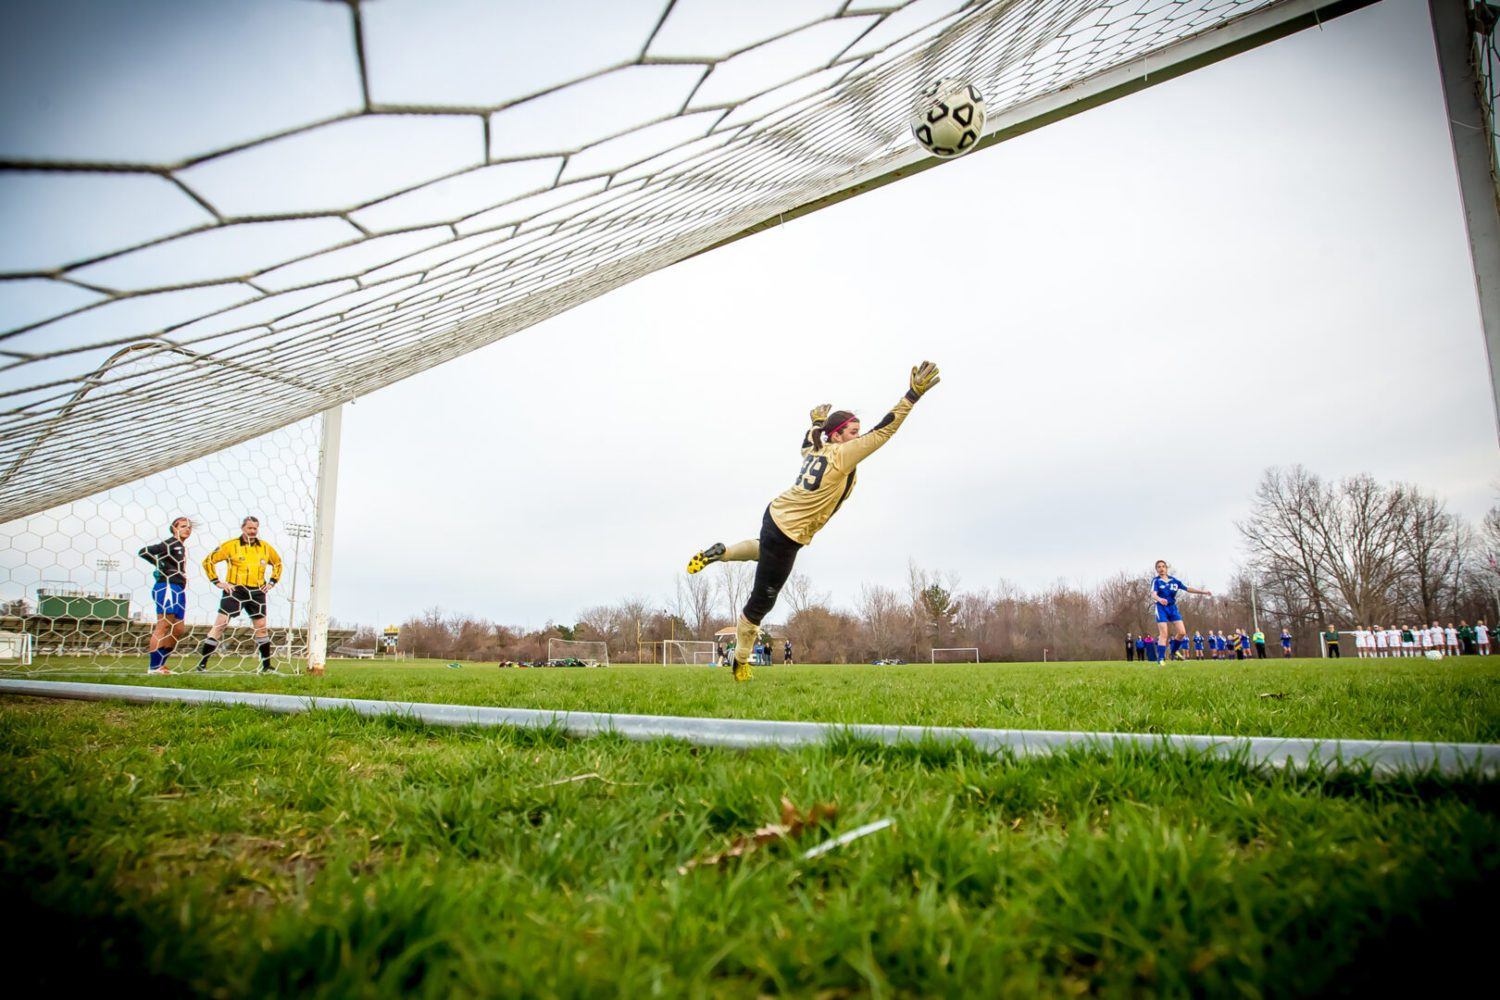 Soccer roundup 5/8: Western Michigan Christian tops rival Muskegon Catholic, OV shuts out Whitehall